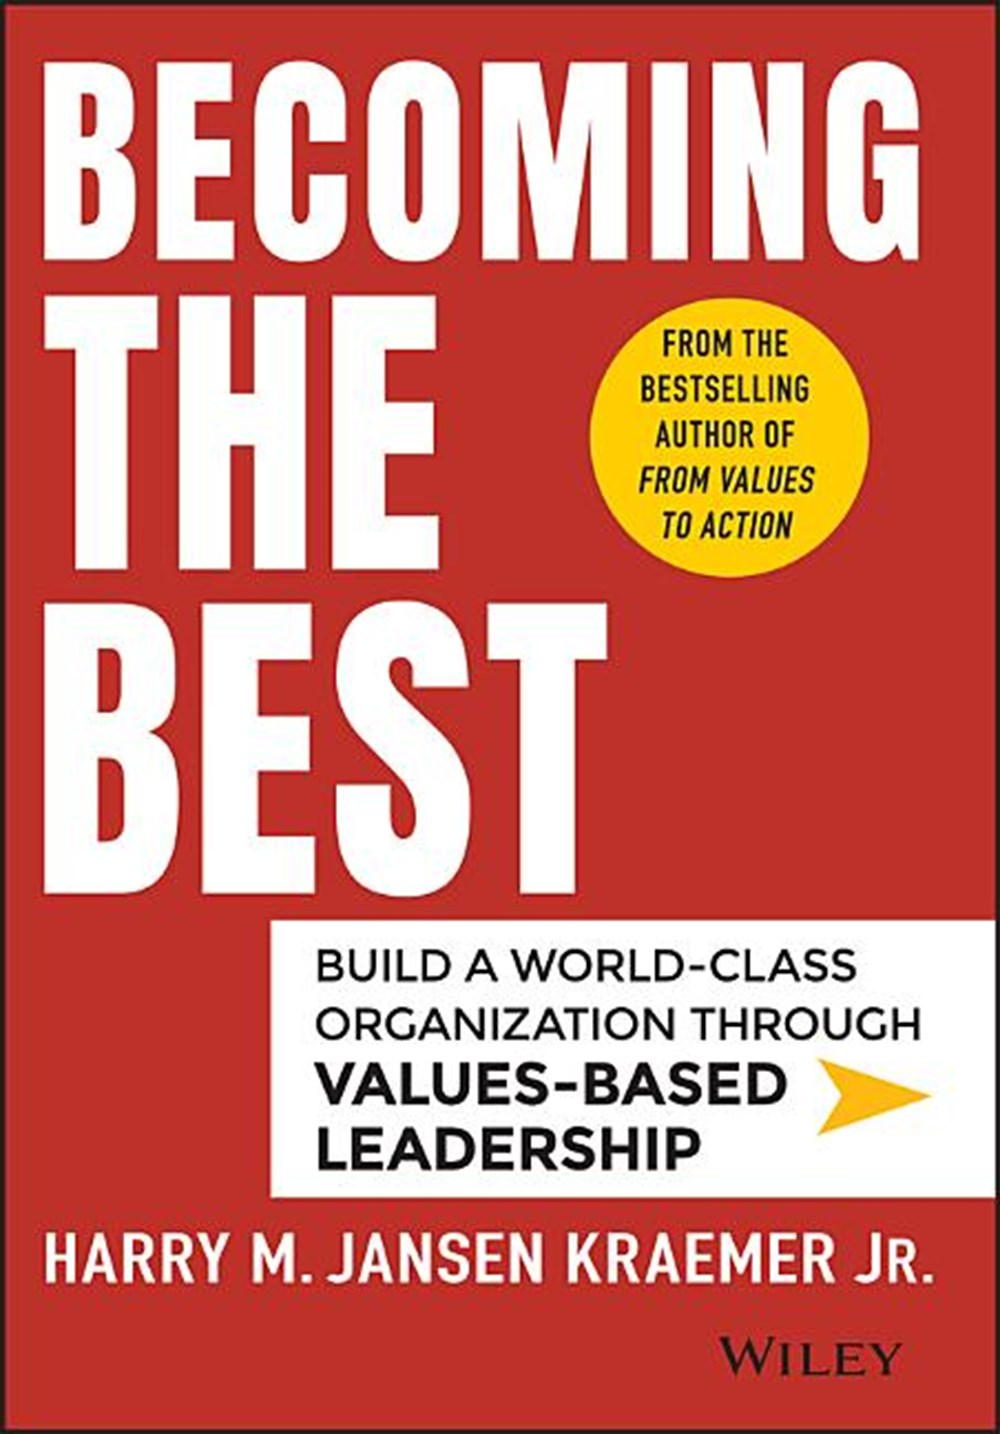 Becoming the Best Build a World-Class Organization Through Values-Based Leadership